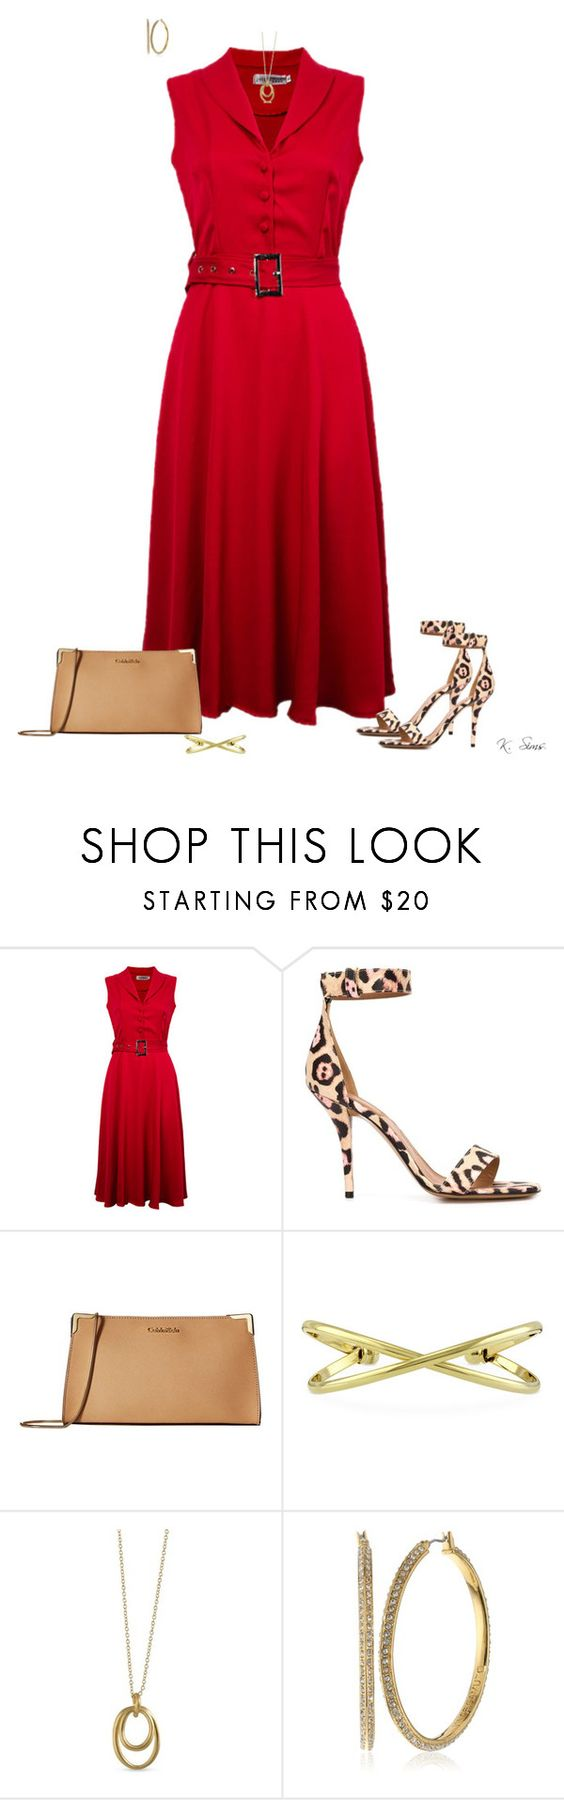 """""""This dress + these heels = knock'em dead"""" by ksims-1 ❤ liked on Polyvore featuring Givenchy, Calvin Klein, BERRICLE, Karen Kane and Vince Camuto"""